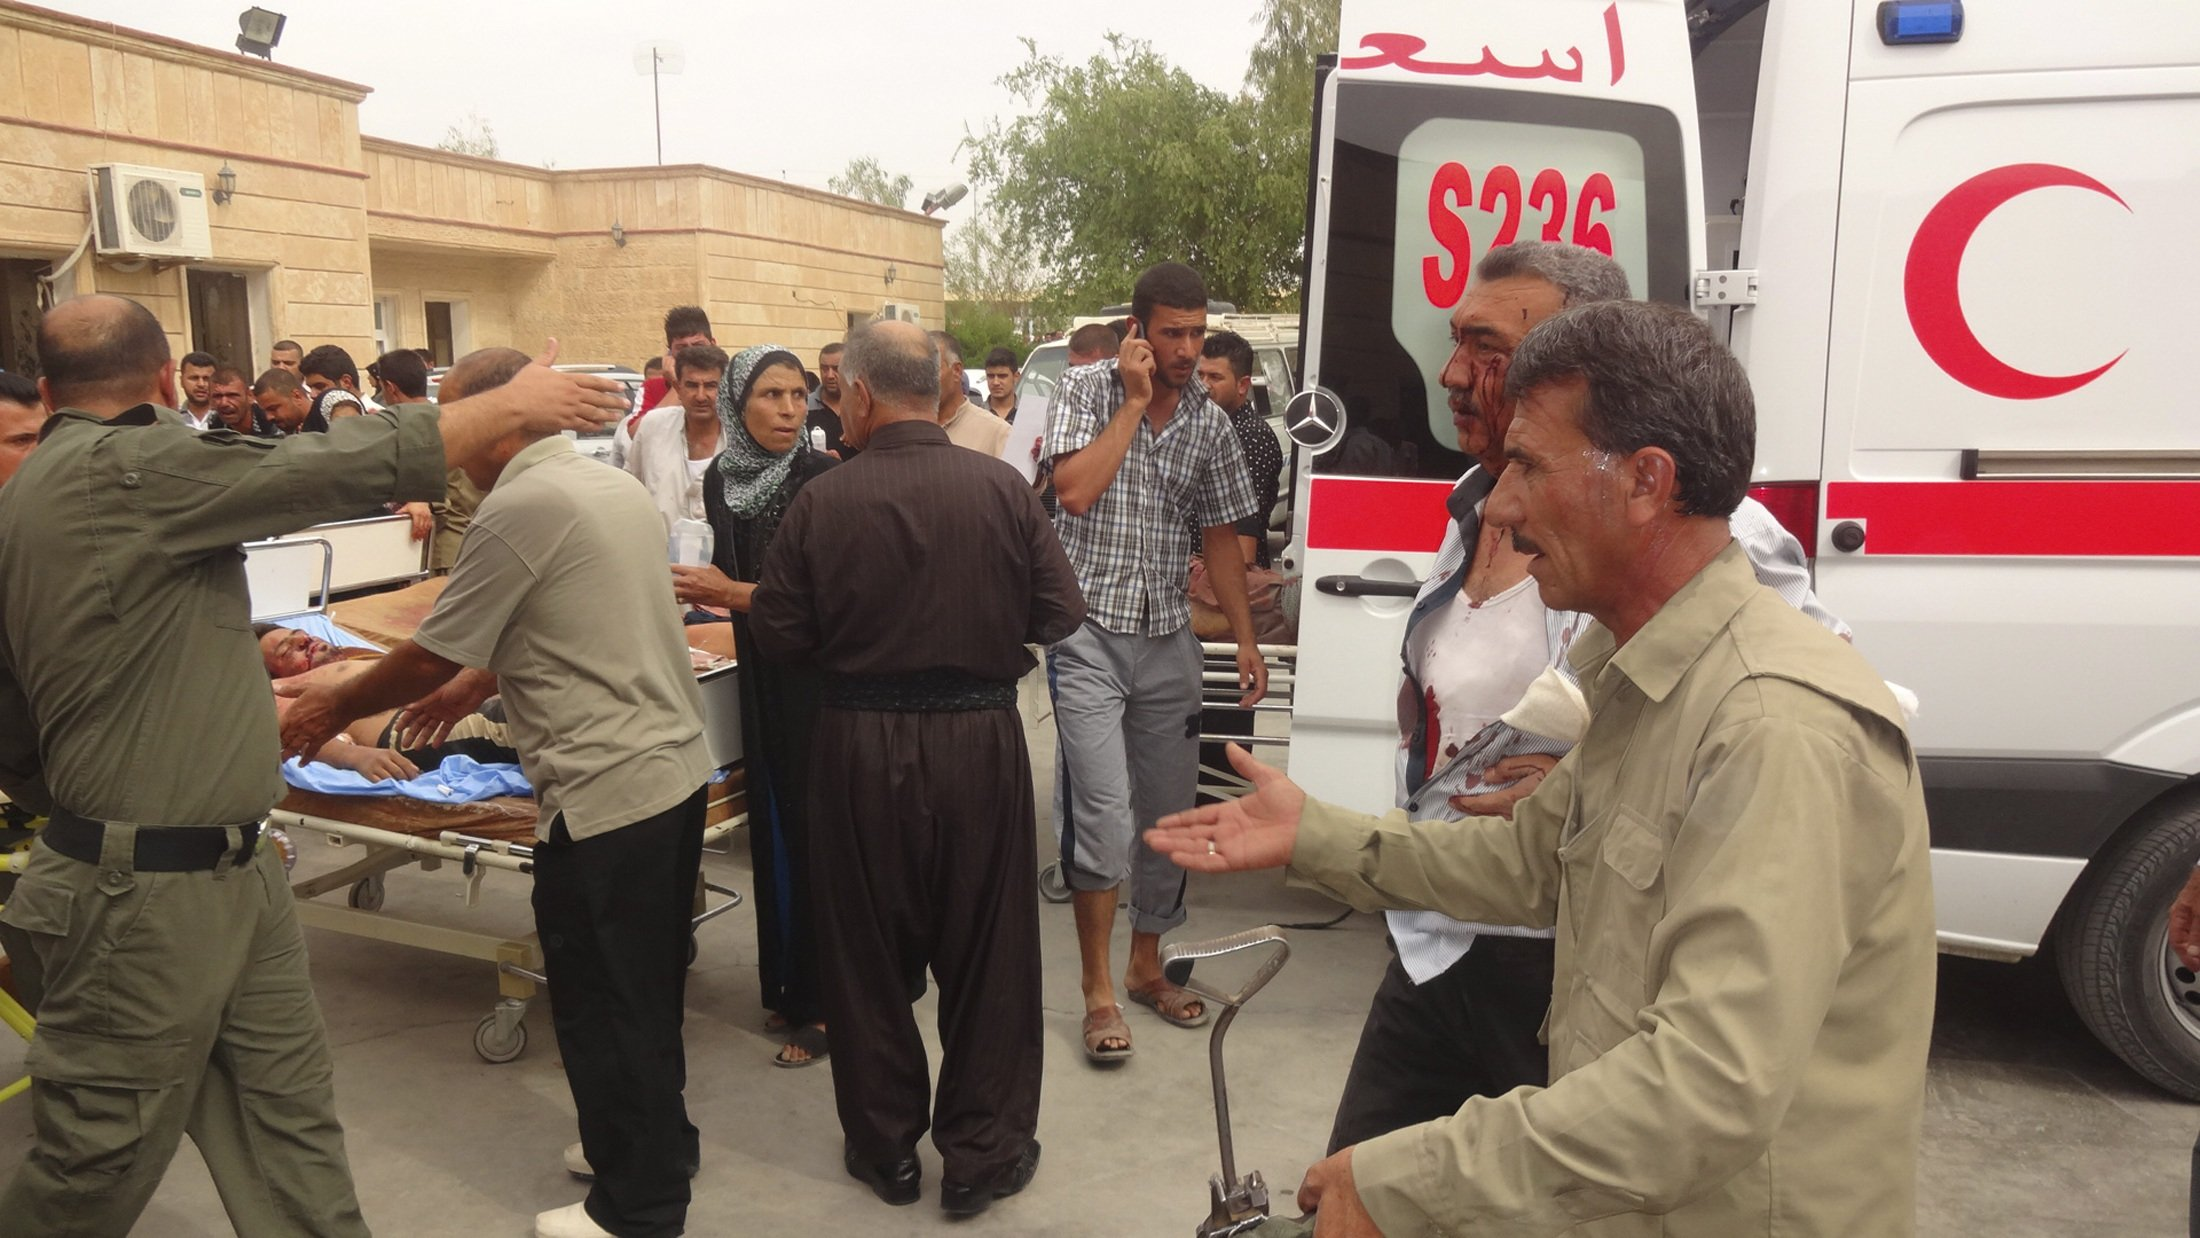 Men wounded by a car bomb in Qara Qubah are transported to a hospital in Kifri, Iraq on Oct. 12, 2014.